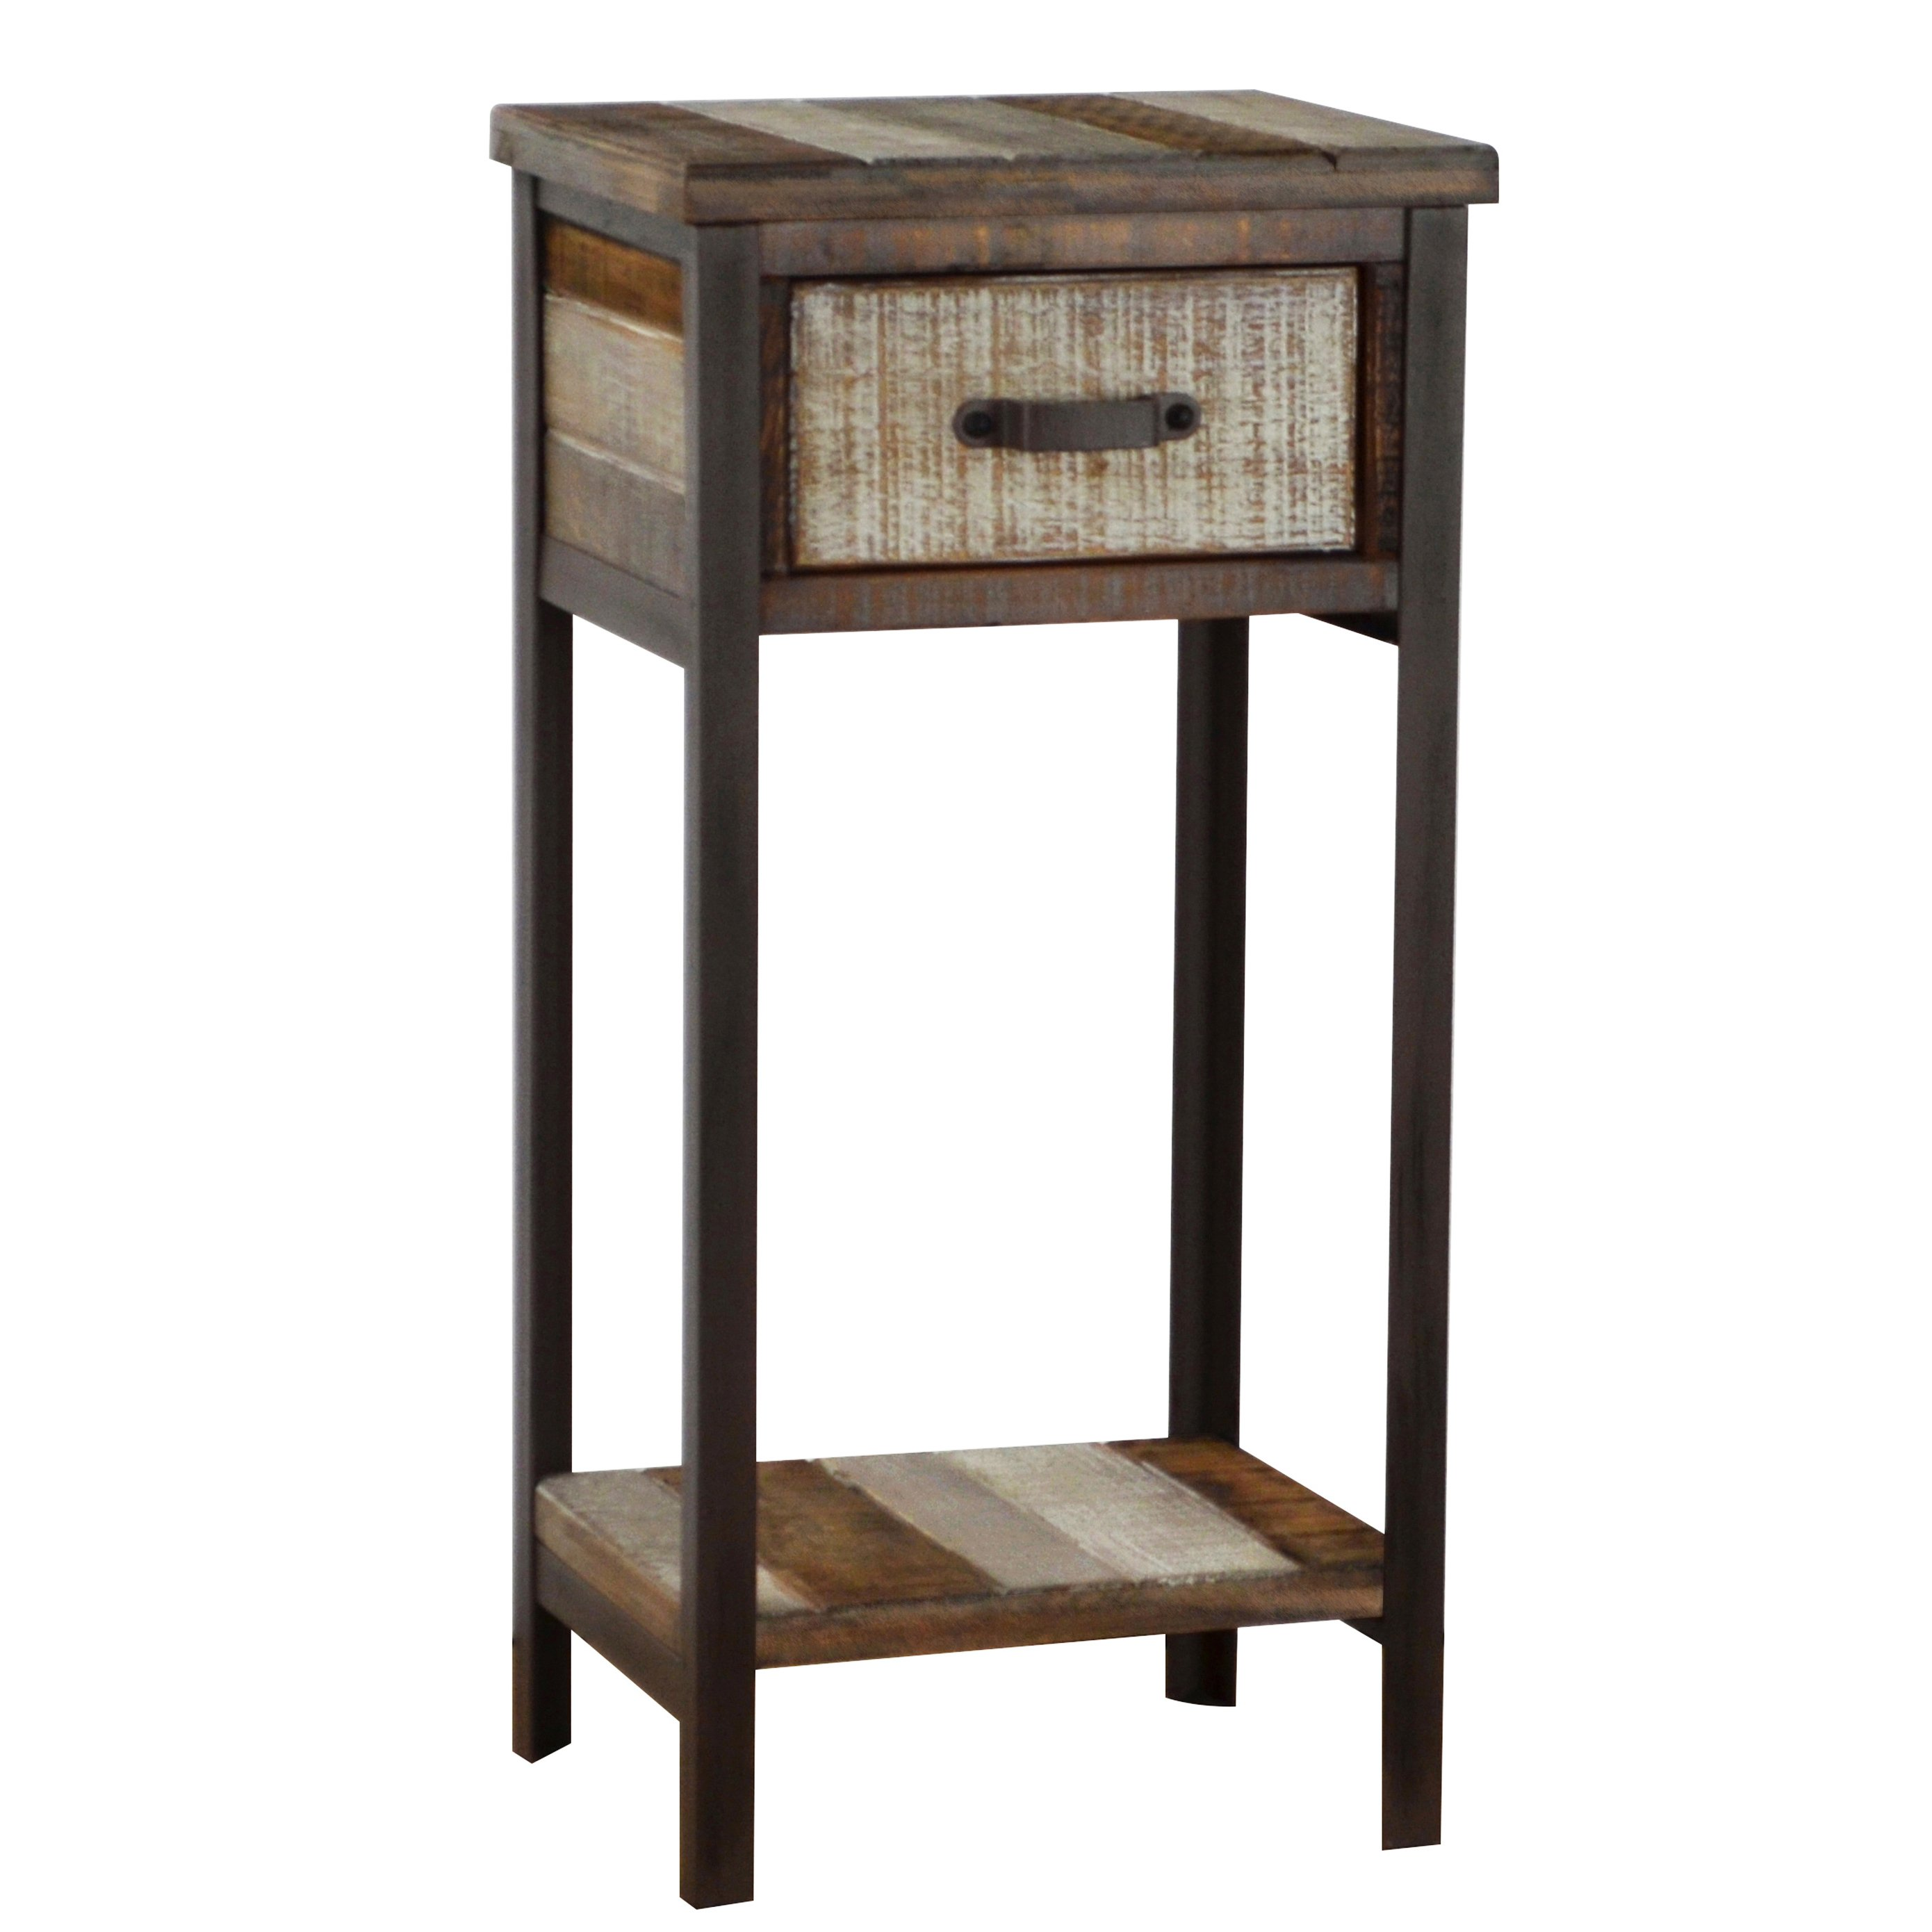 carbon loft scott wood accent table cabinet free shipping pine canopy goosefoot today acrylic ikea console with shelves barn door designs roland drum throne designer legs outdoor